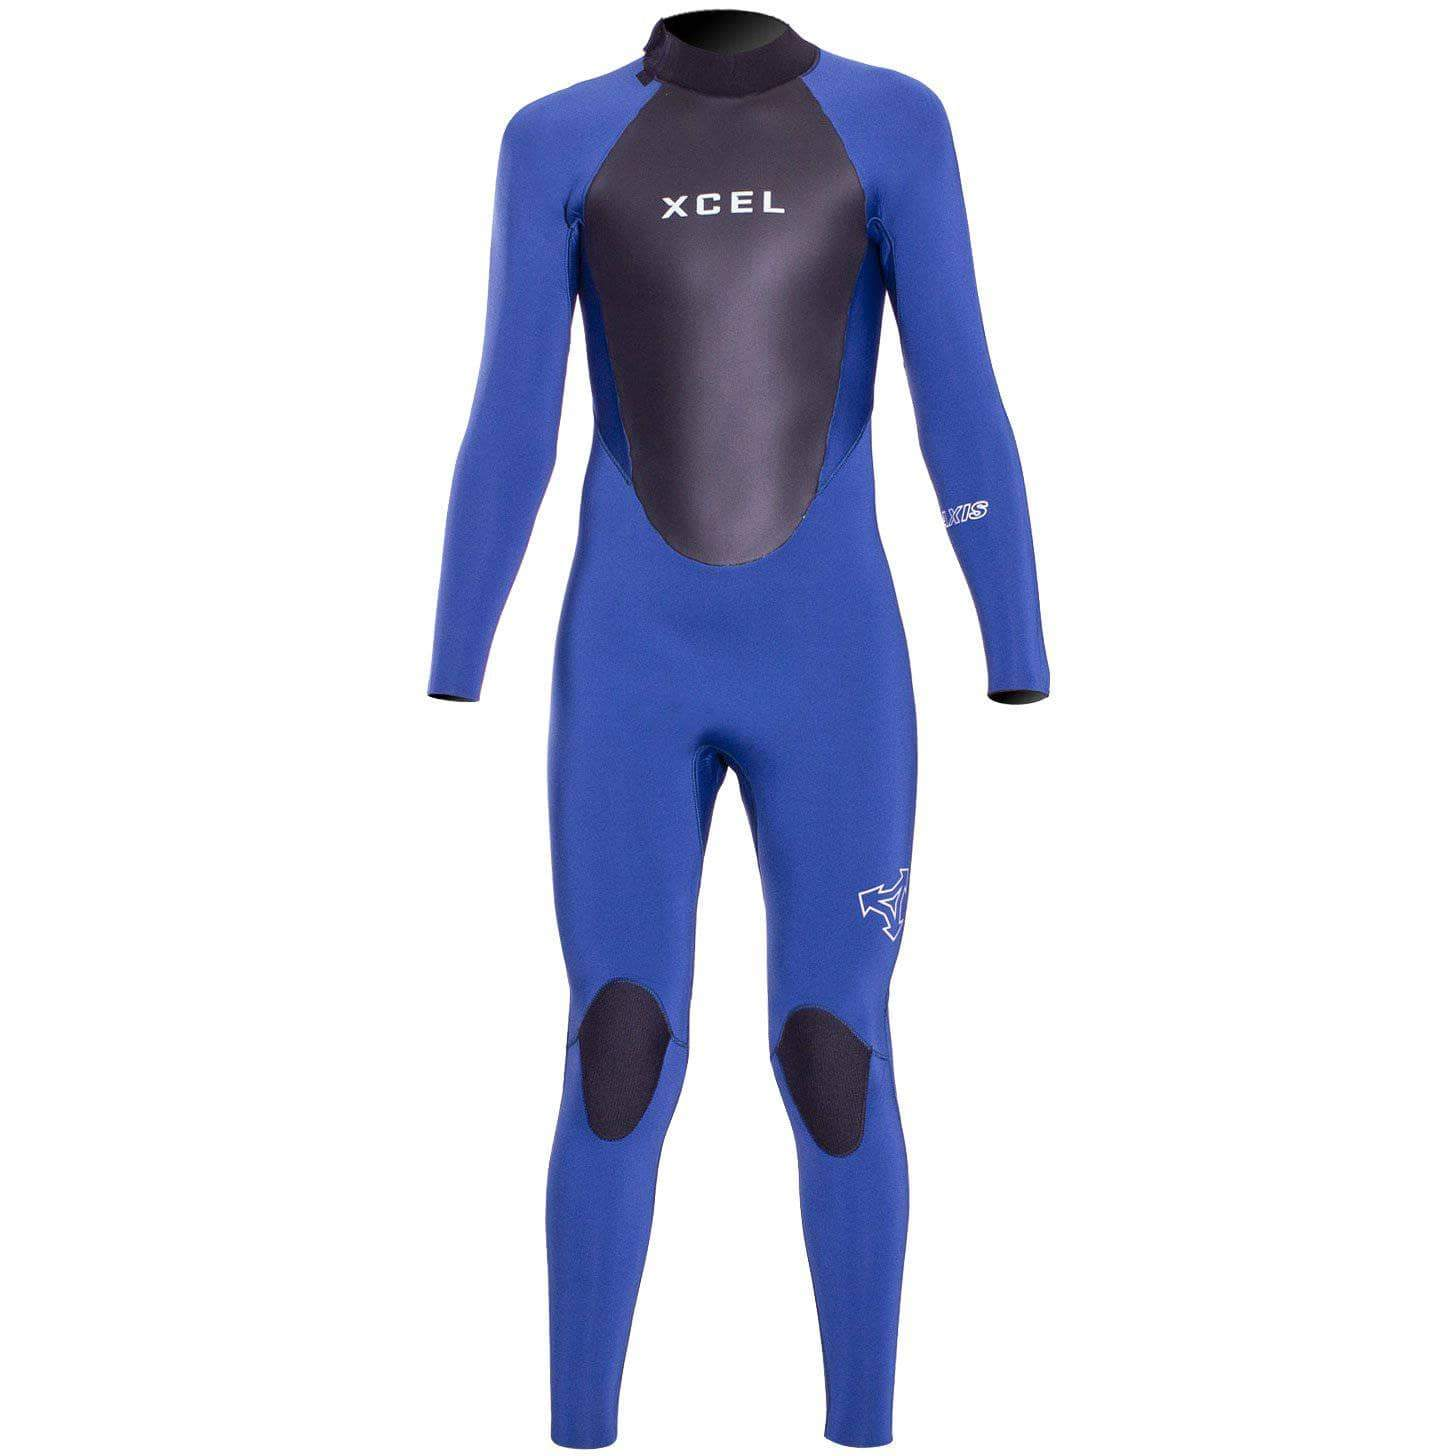 Xcel Kids Full Length Wetsuit Xcel Kids 5/4mm Axis 2019/20 Wetsuit Faint Blue